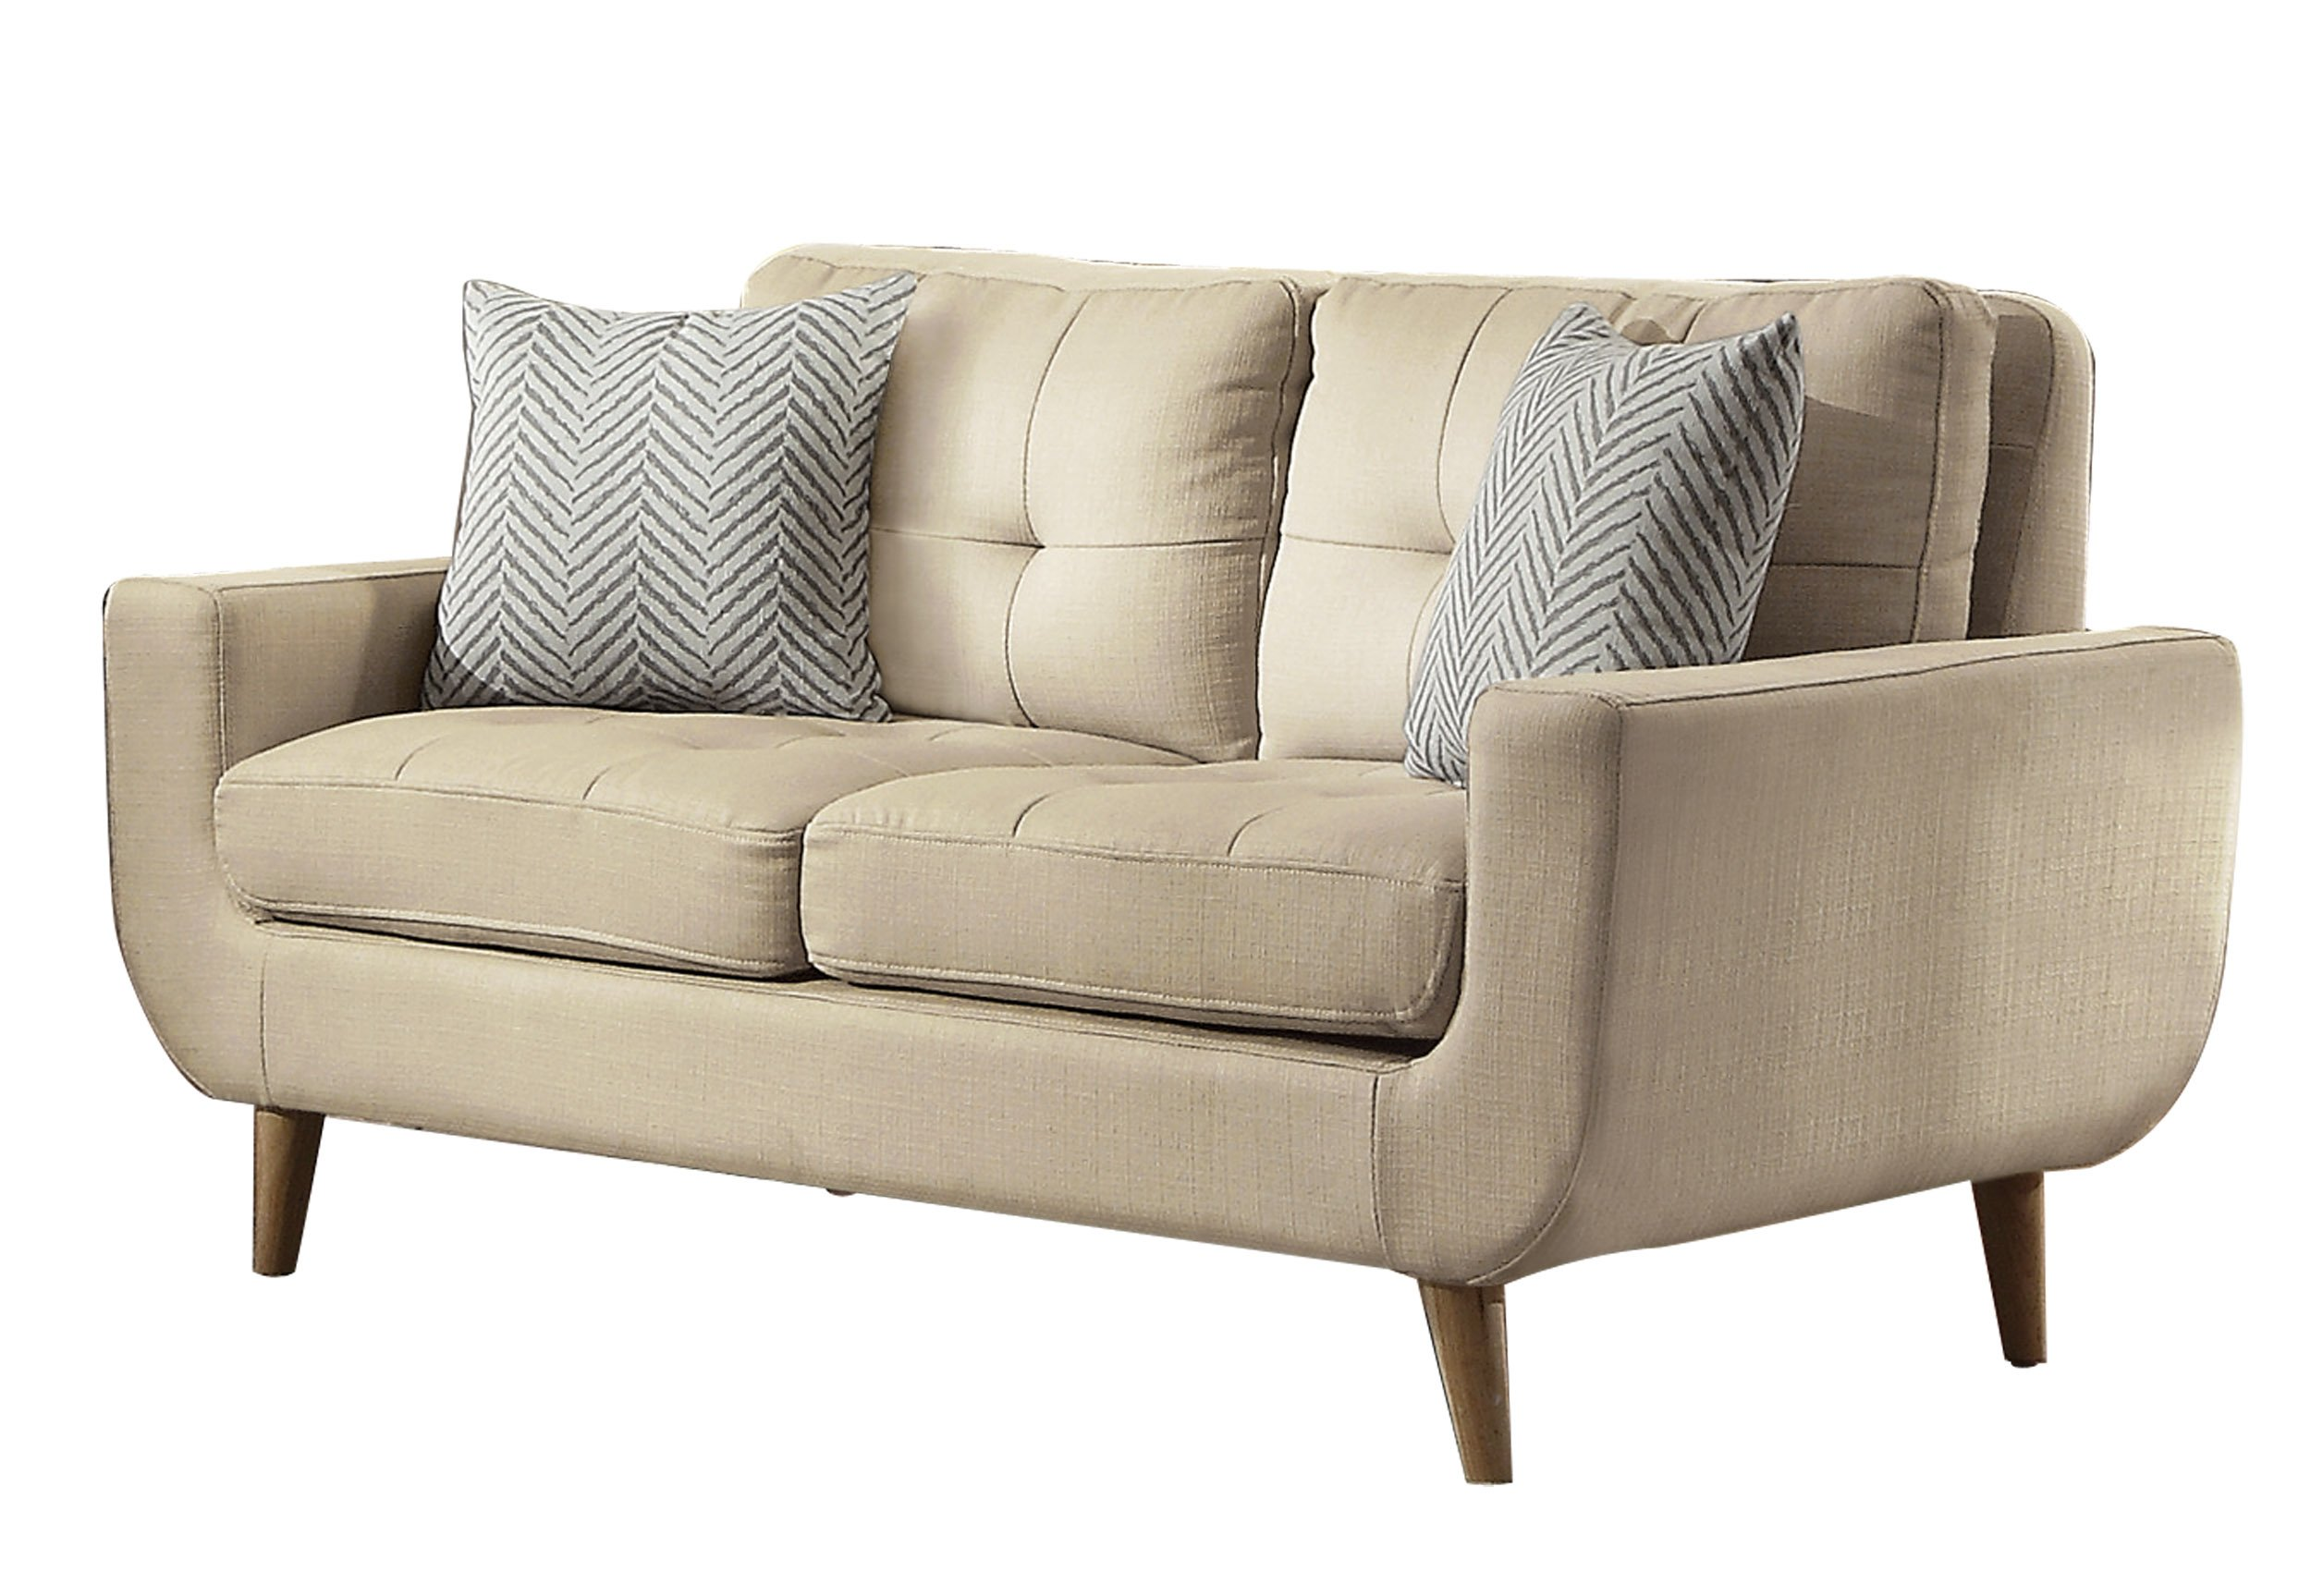 Homelegance Deryn Mid-Century Modern Loveseat with Tufted Back and Two Herringbone Throw Pillows, Beige by Homelegance (Image #1)